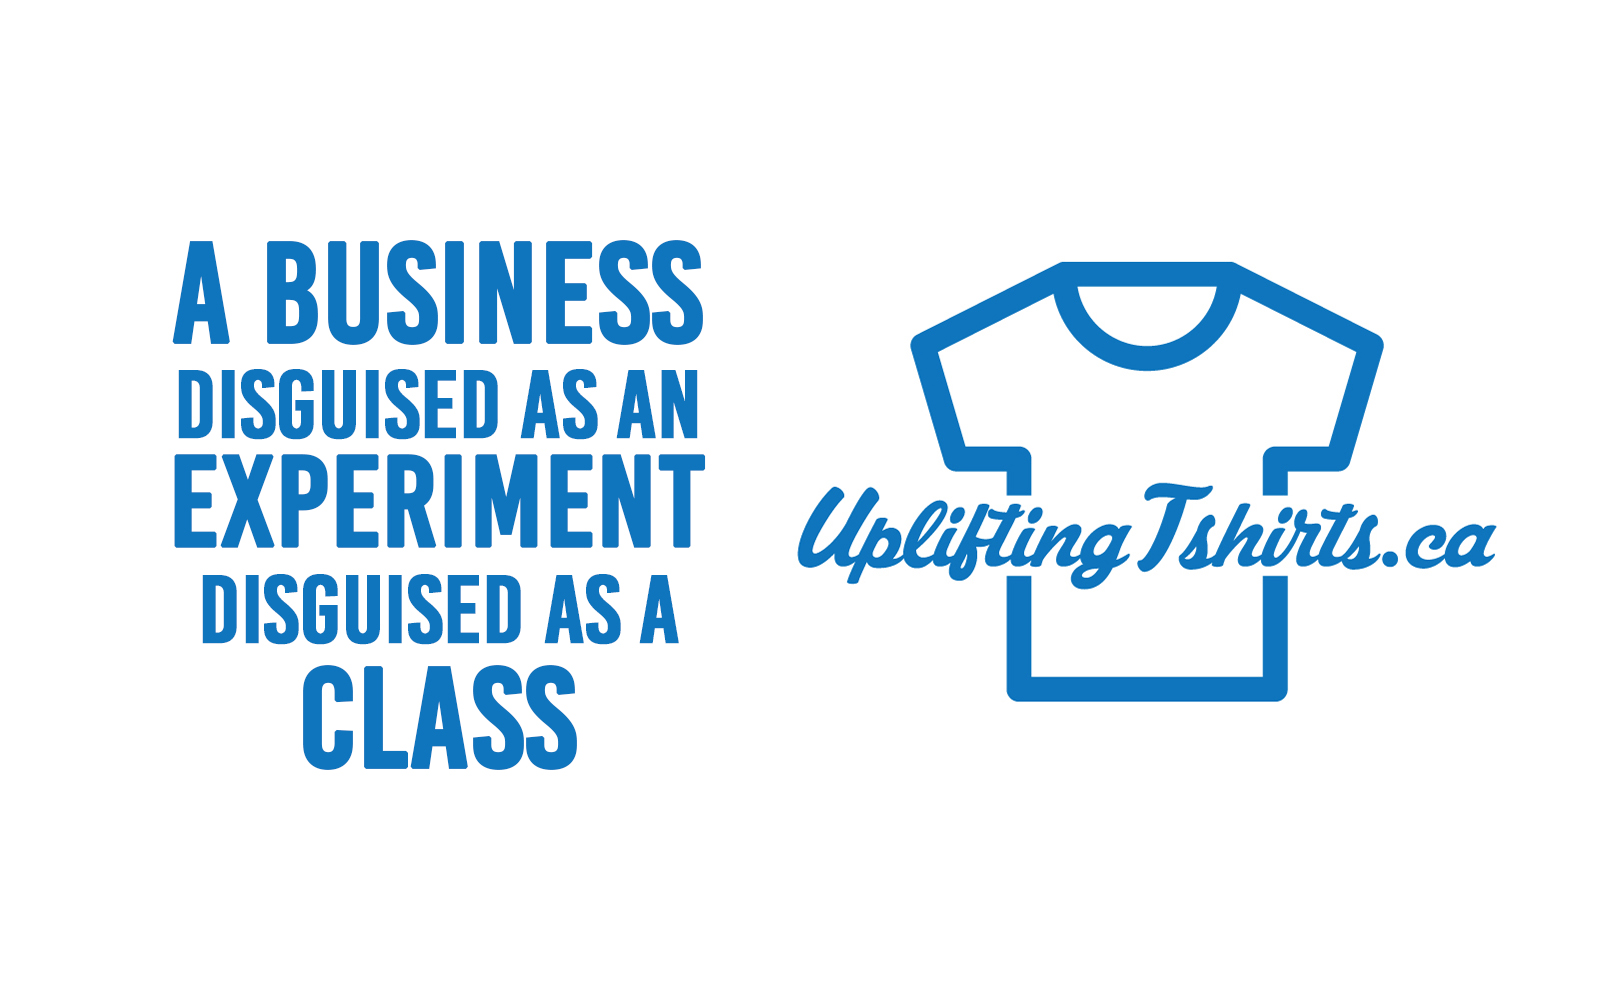 A business disguised as an experiment disguised as a class